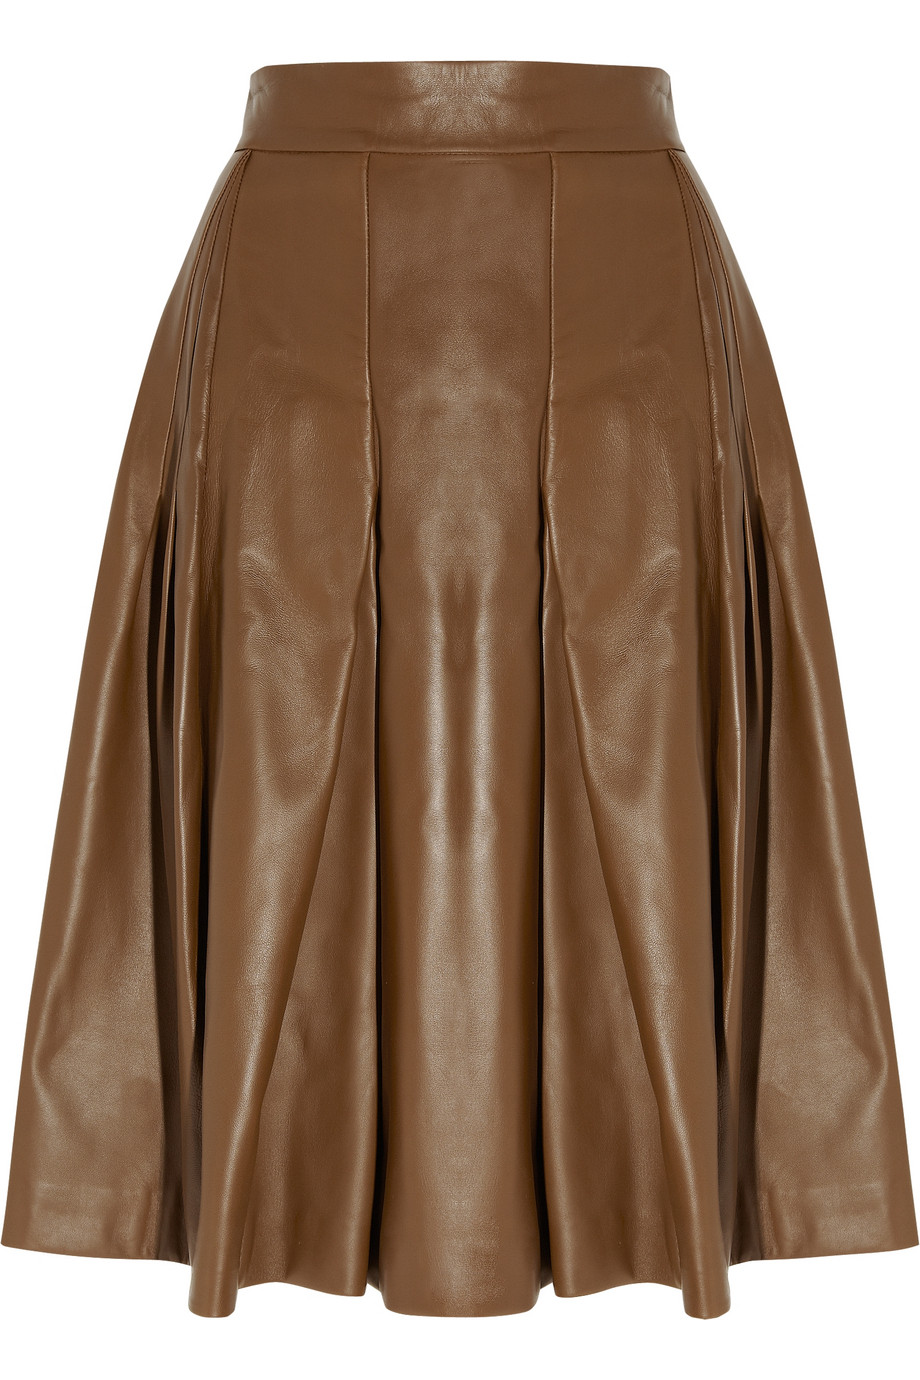 Saint laurent Leather A-line Skirt in Brown | Lyst